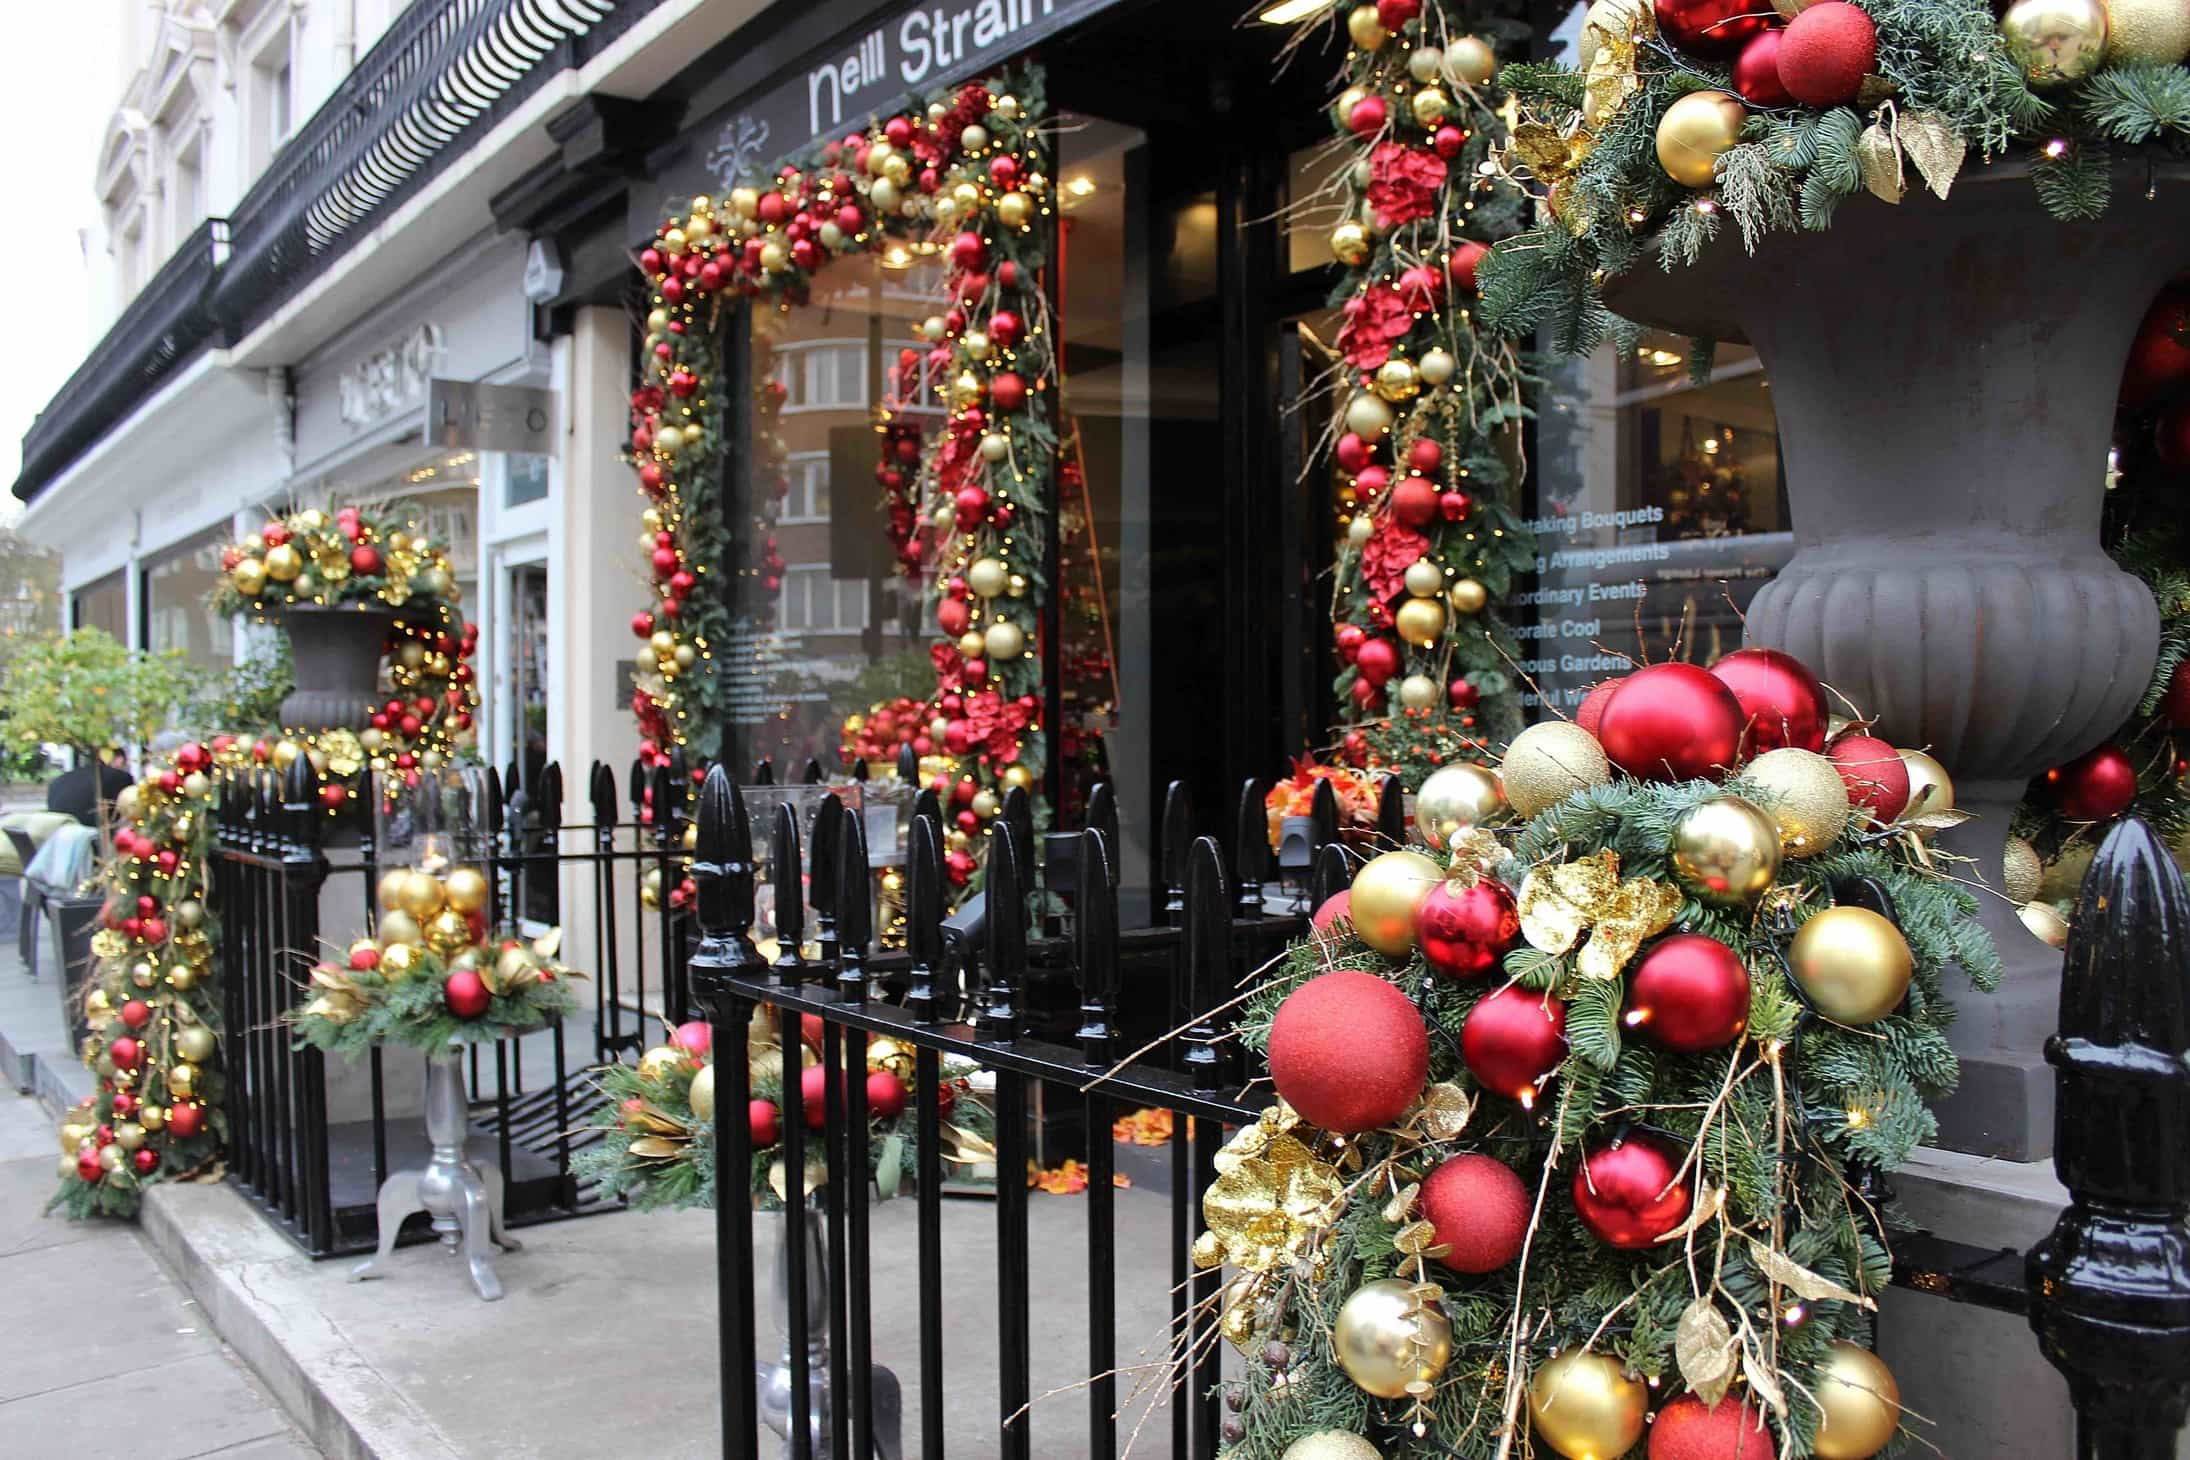 Neill Strain, Christmas, 2015, flowers, florists, famous london florists,  decorations,  gold and red